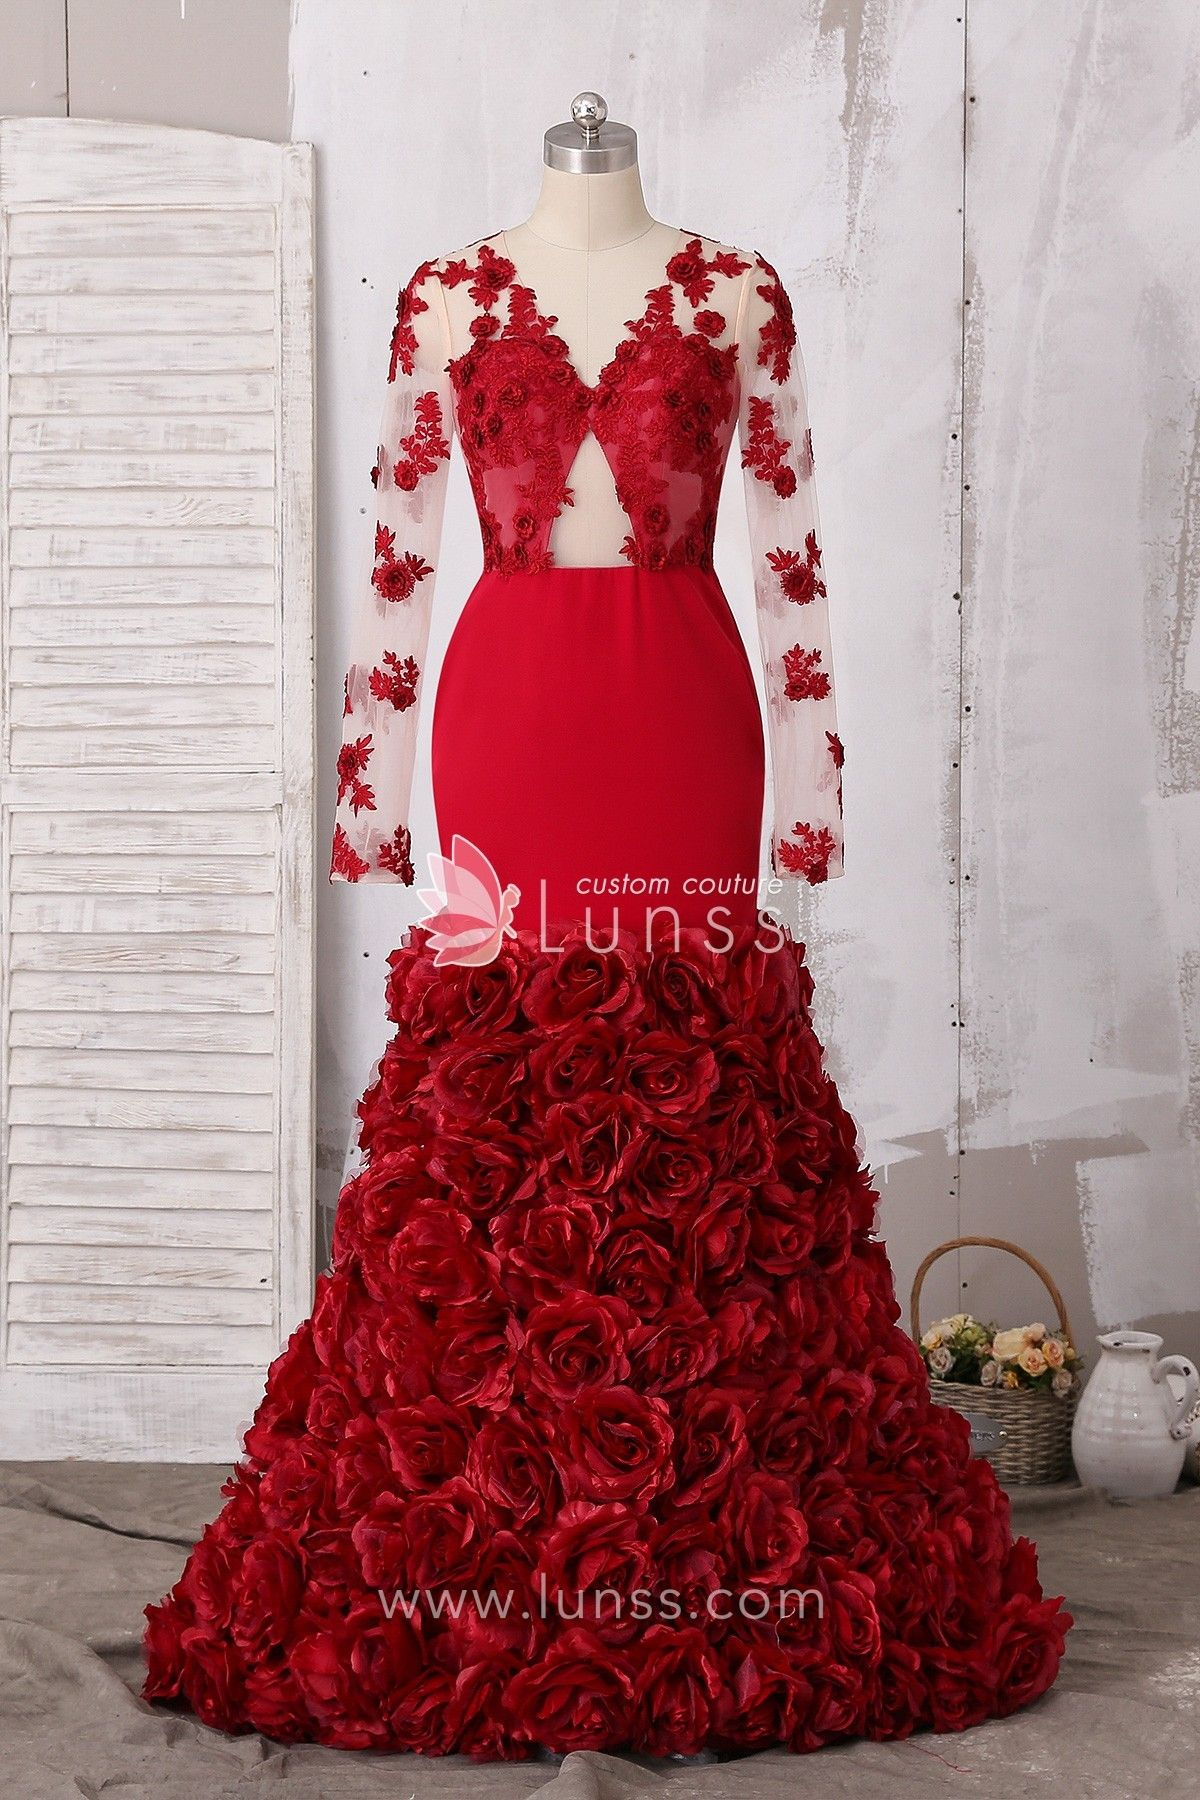 b8cf1c2586a ... sleeve bodice with 3D lace on, sexy cutout at belly and drop open back,  3D rose flowers bespread on mermaid skirt. This is the best prom dress for  black ...